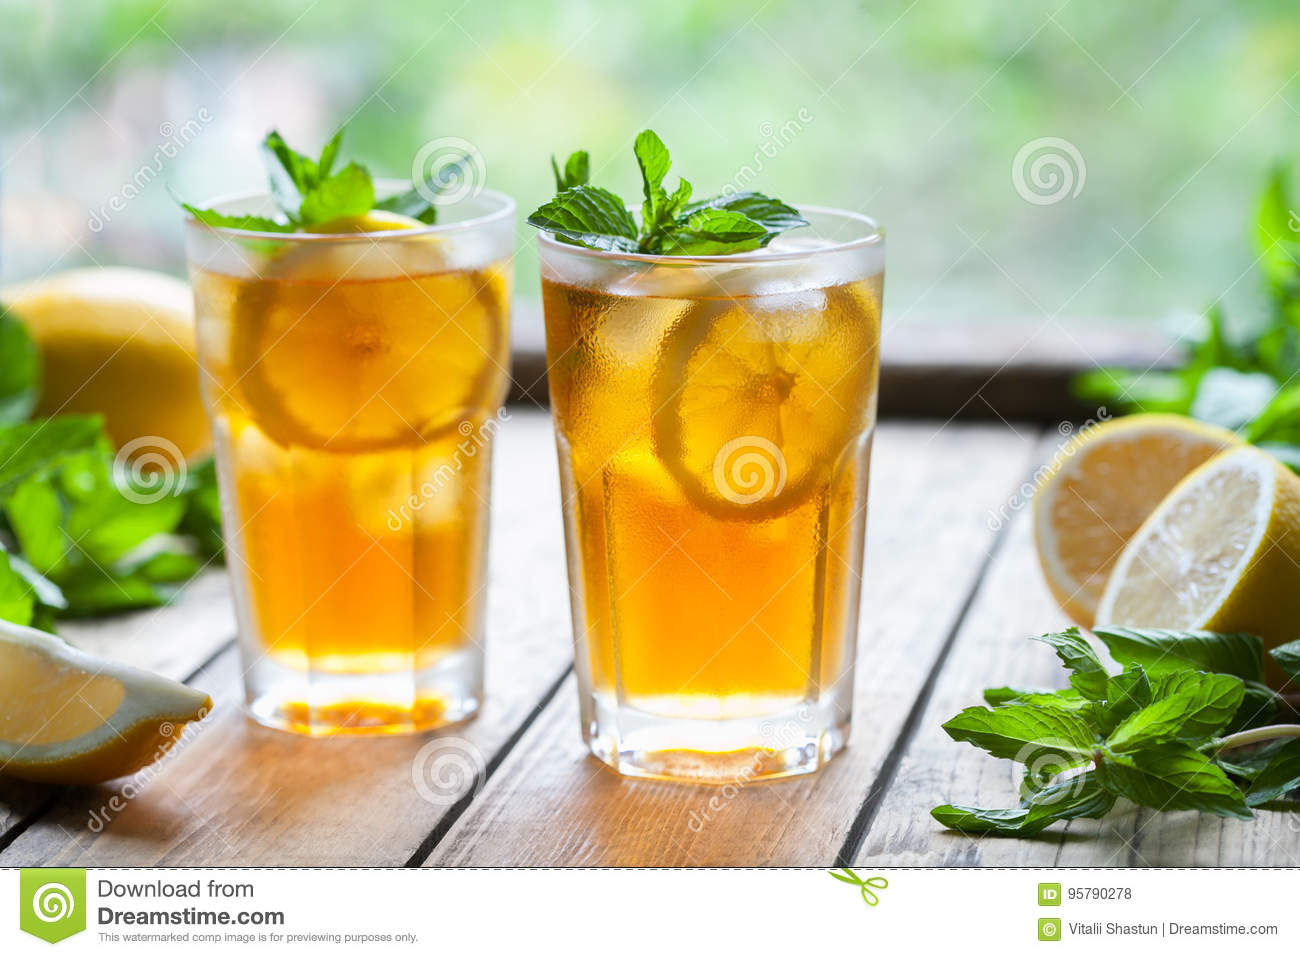 Iced tea with lemon slices and mint on wooden table with a view to the terrace and trees. Close up summer beverage